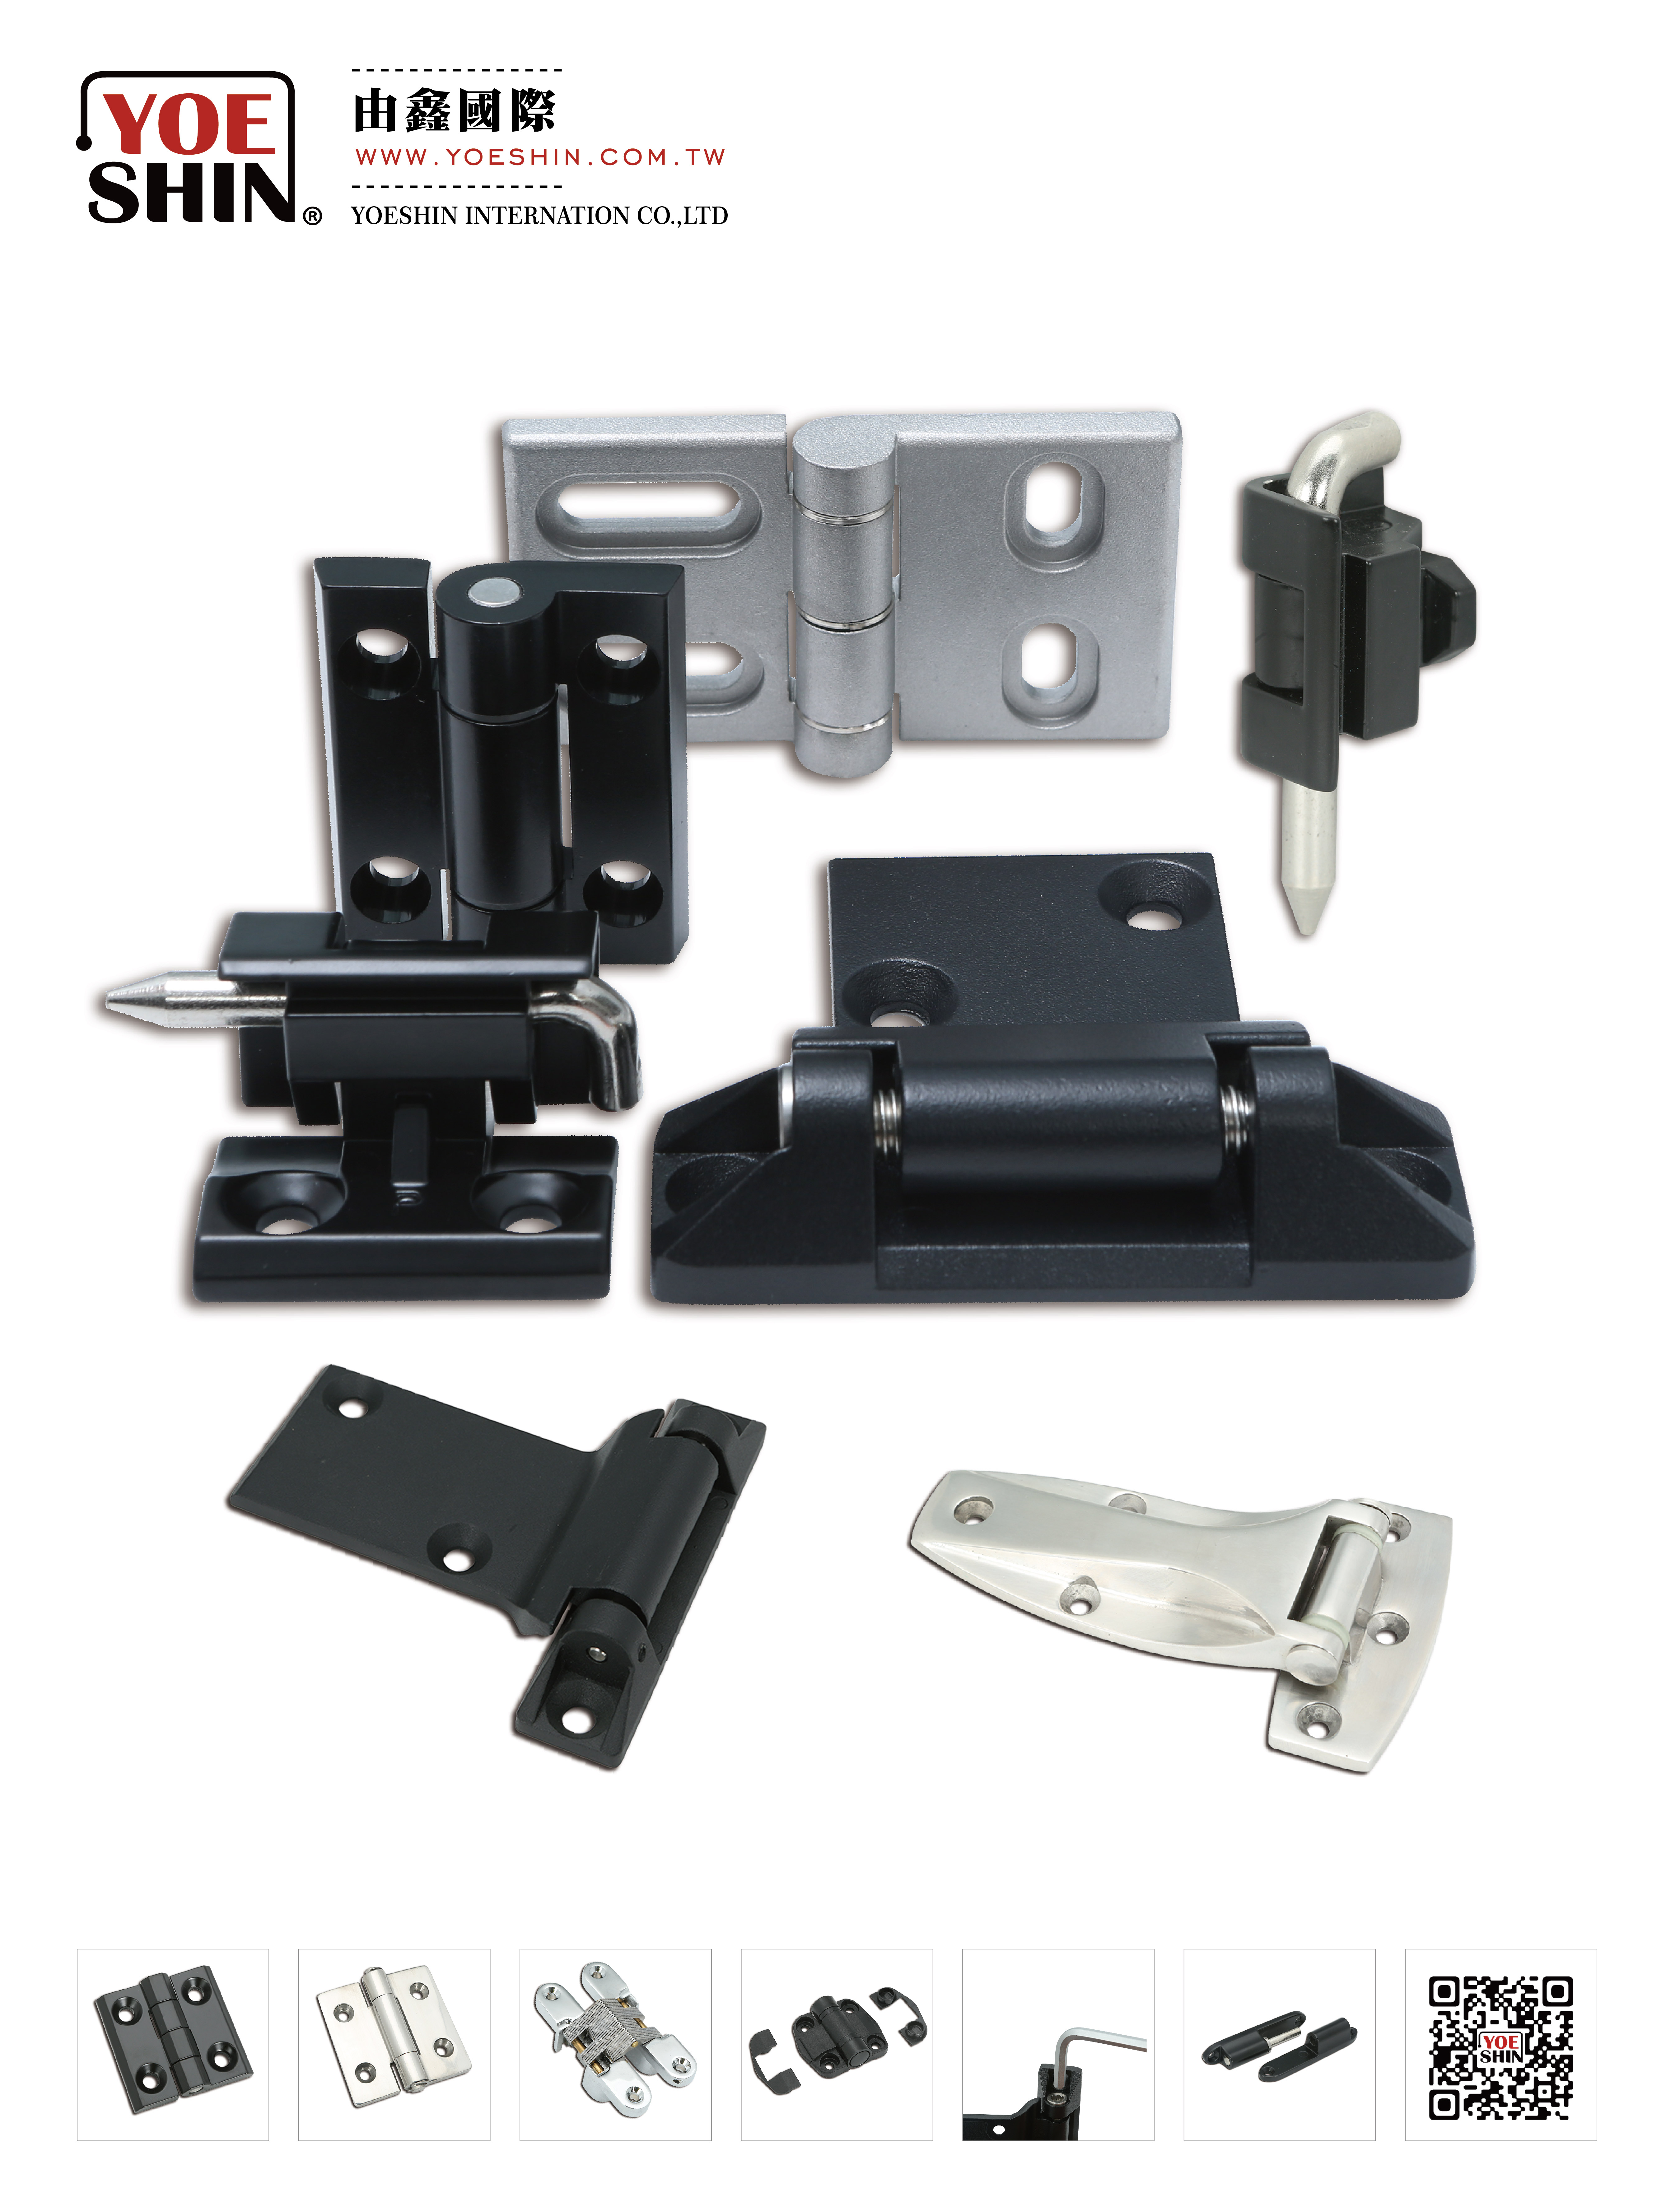 screw-fixed hinges, detachable hinges, exterior hinges and concealed hinges, Lift-off hinges, Constant torque hinge, position control hinge, stainless steel SUS316 hinges, concealed hinges, damping hinges, positioning hinges, Freezer hinges, heavy duty hinges, stainless steel hinges, plastic hinges, zinc alloy hinges, aluminum alloy hinges and other industrial hinges